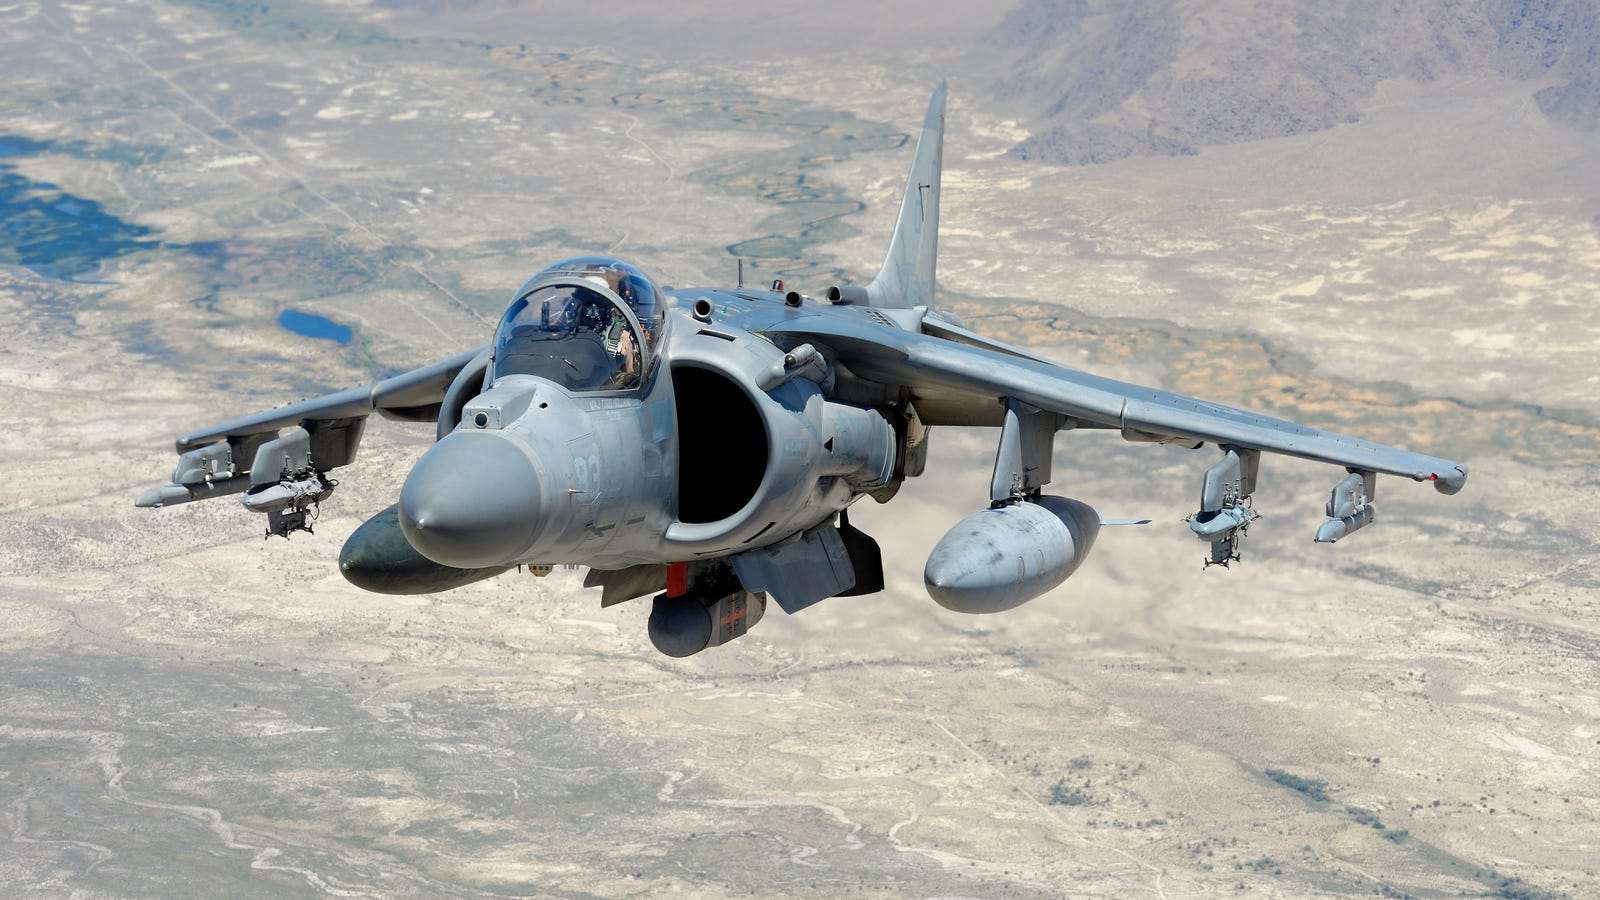 U.S. Marines Will Keep The Harrier Around Longer As Hornet Fleet Crumbles